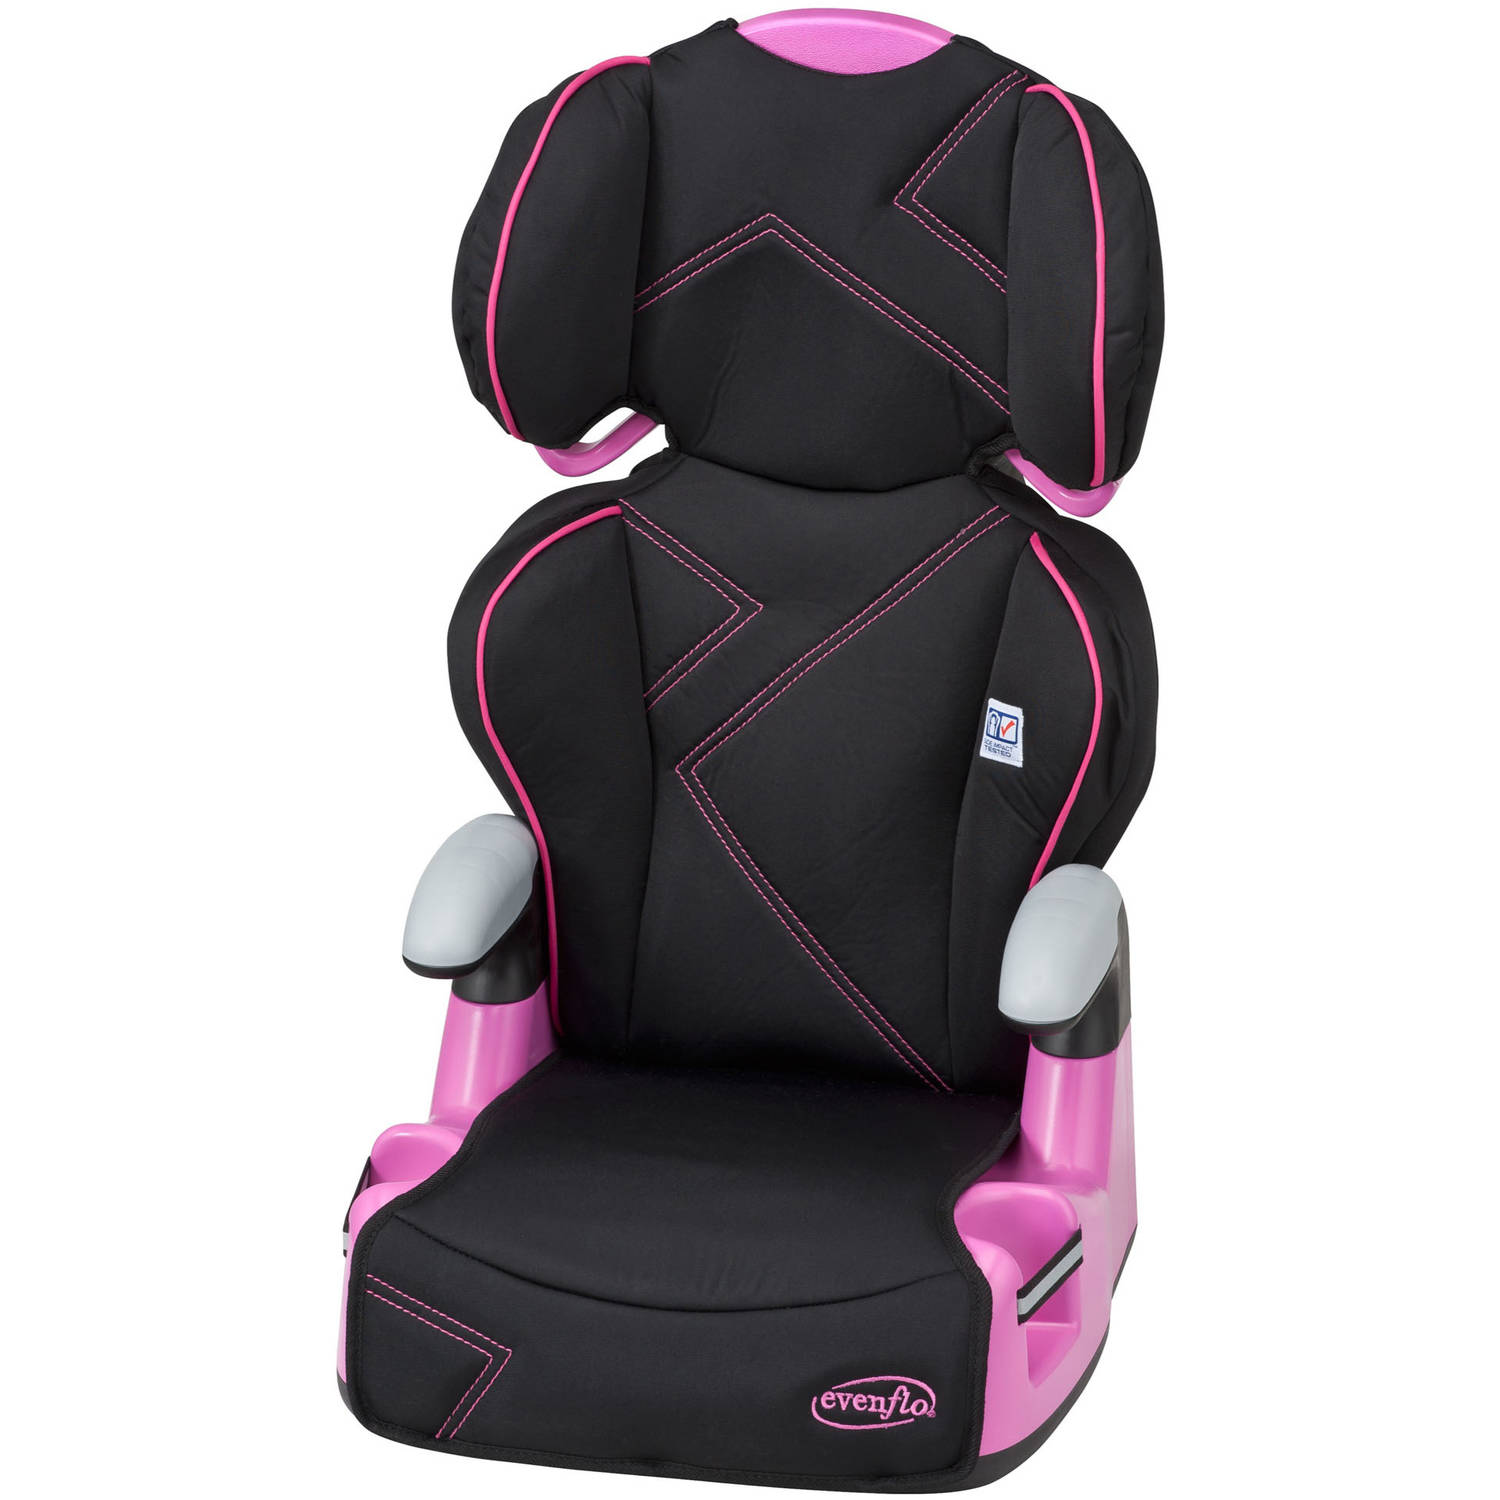 Evenflo Big Kid Amp Booster Car Seat, Pink Angles